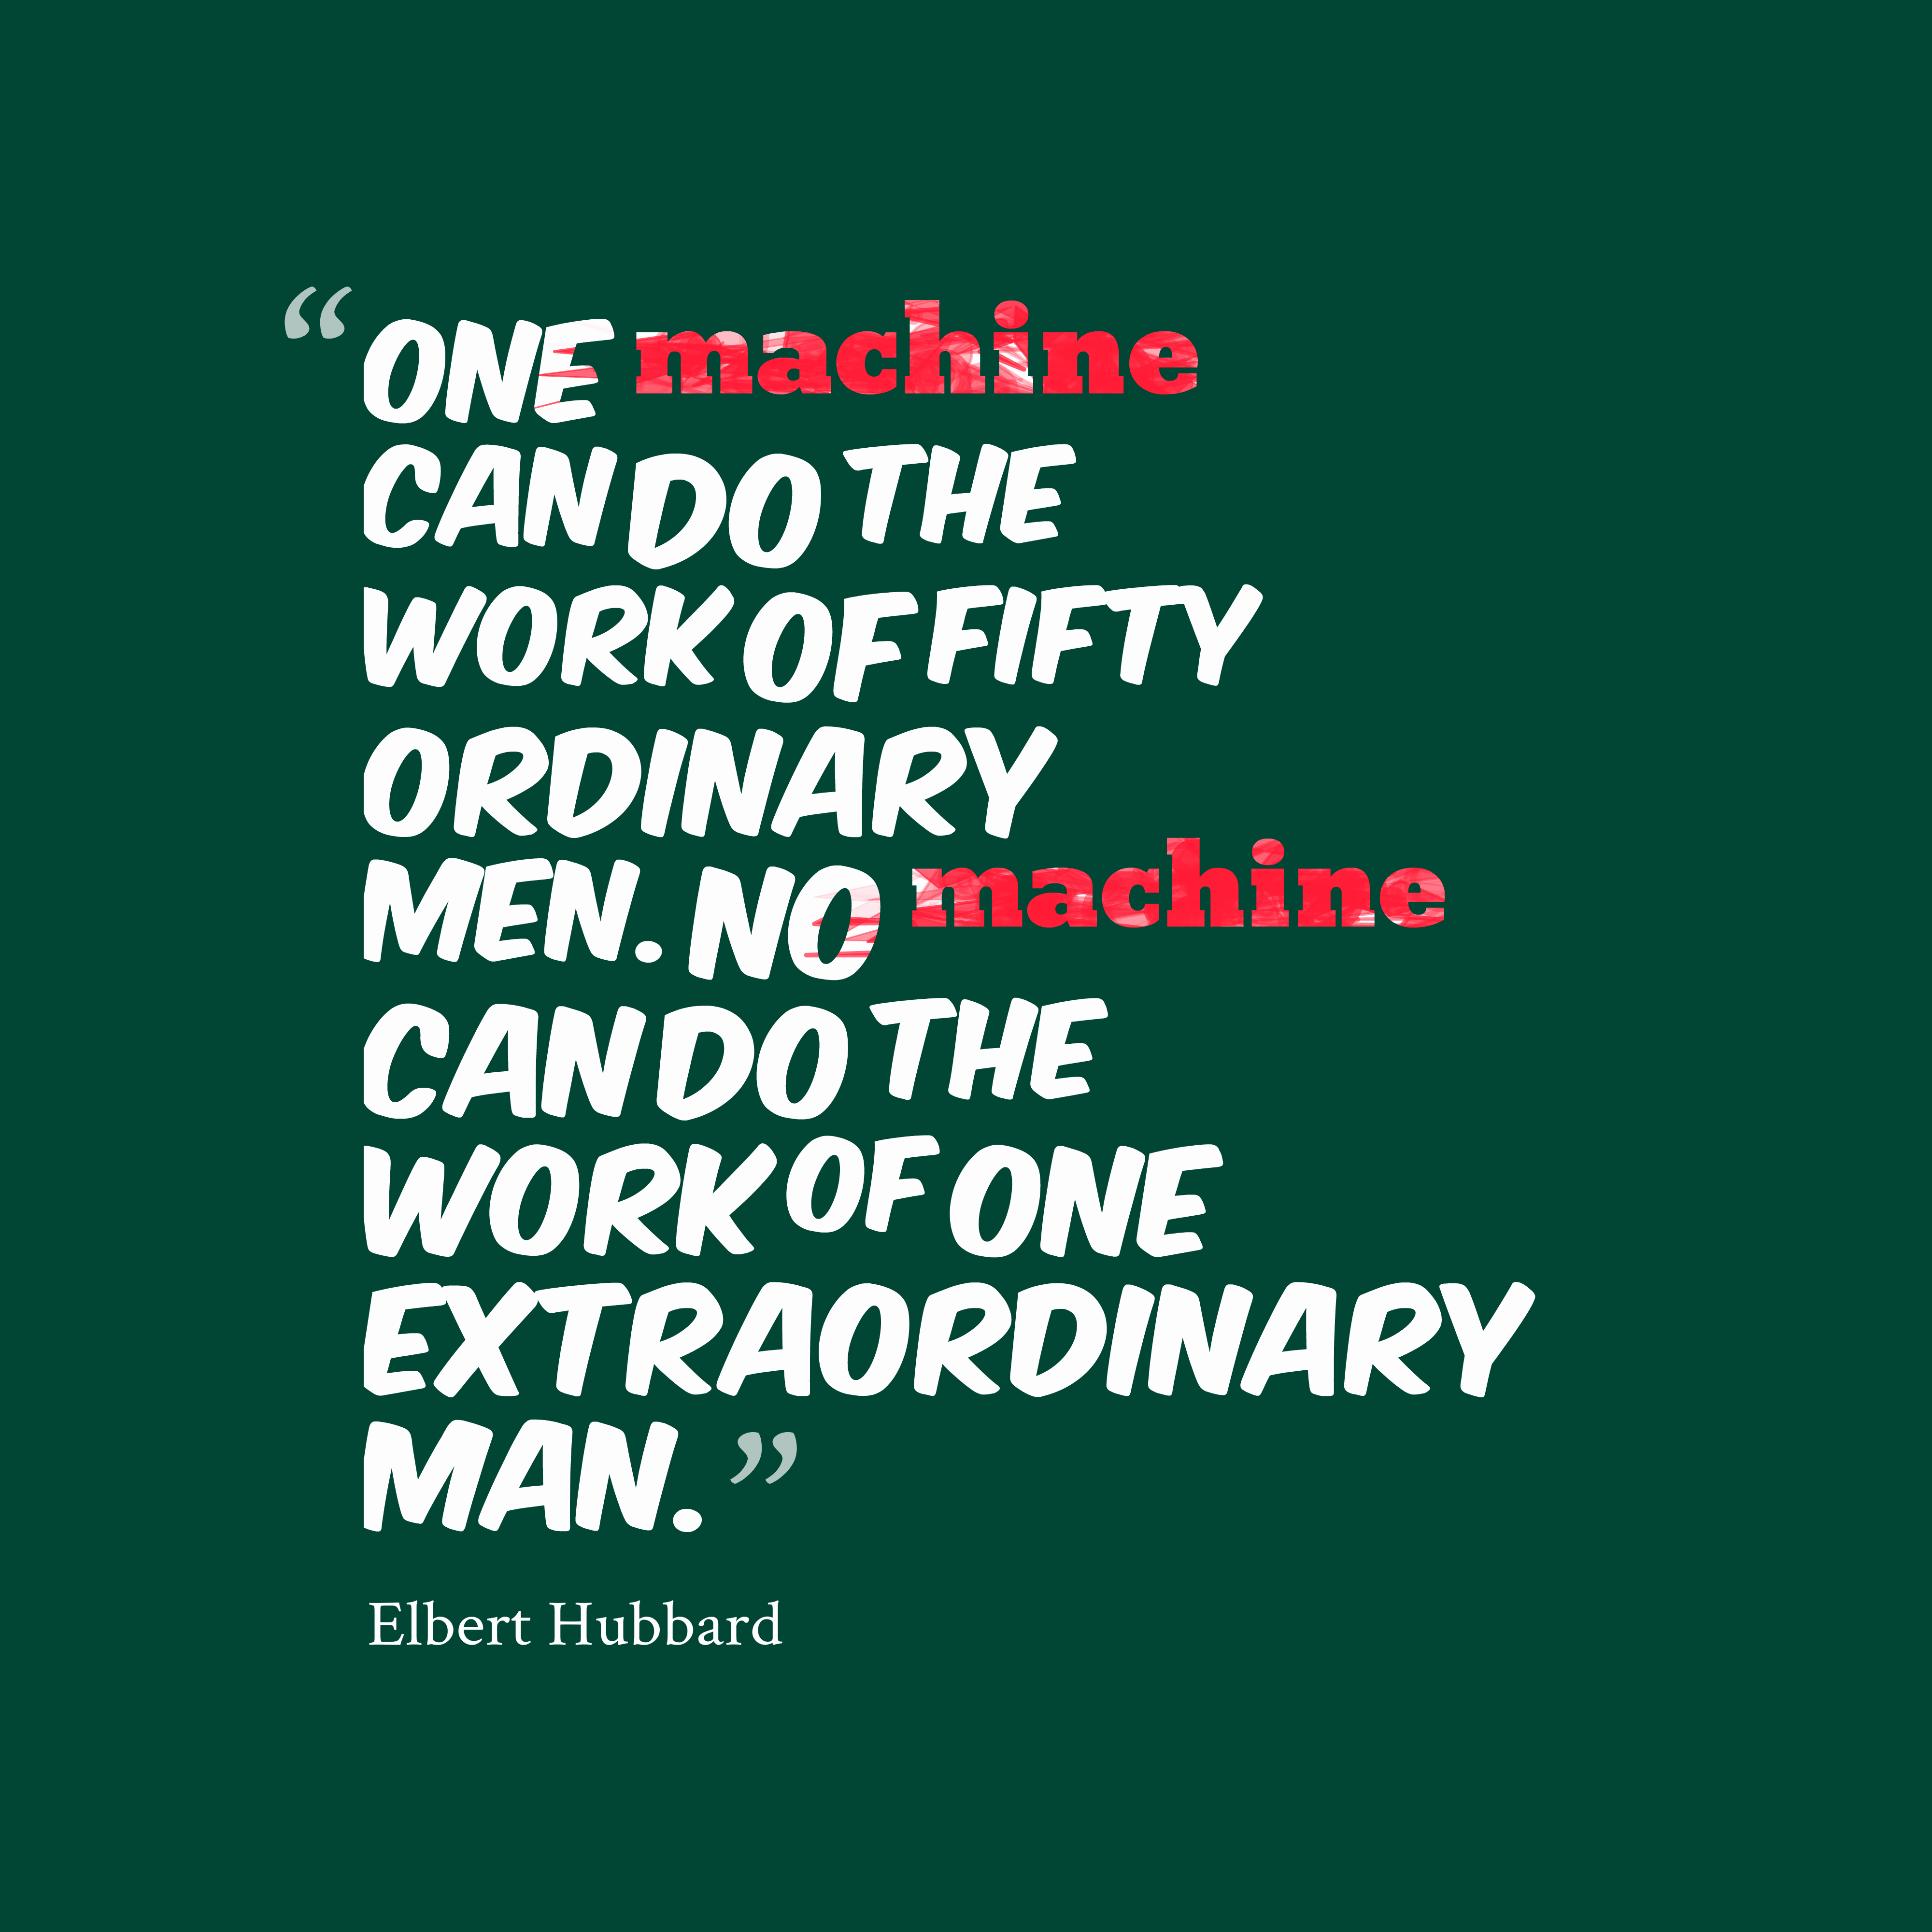 Quotes image of One machine can do the work of fifty ordinary men. No machine can do the work of one extraordinary man.